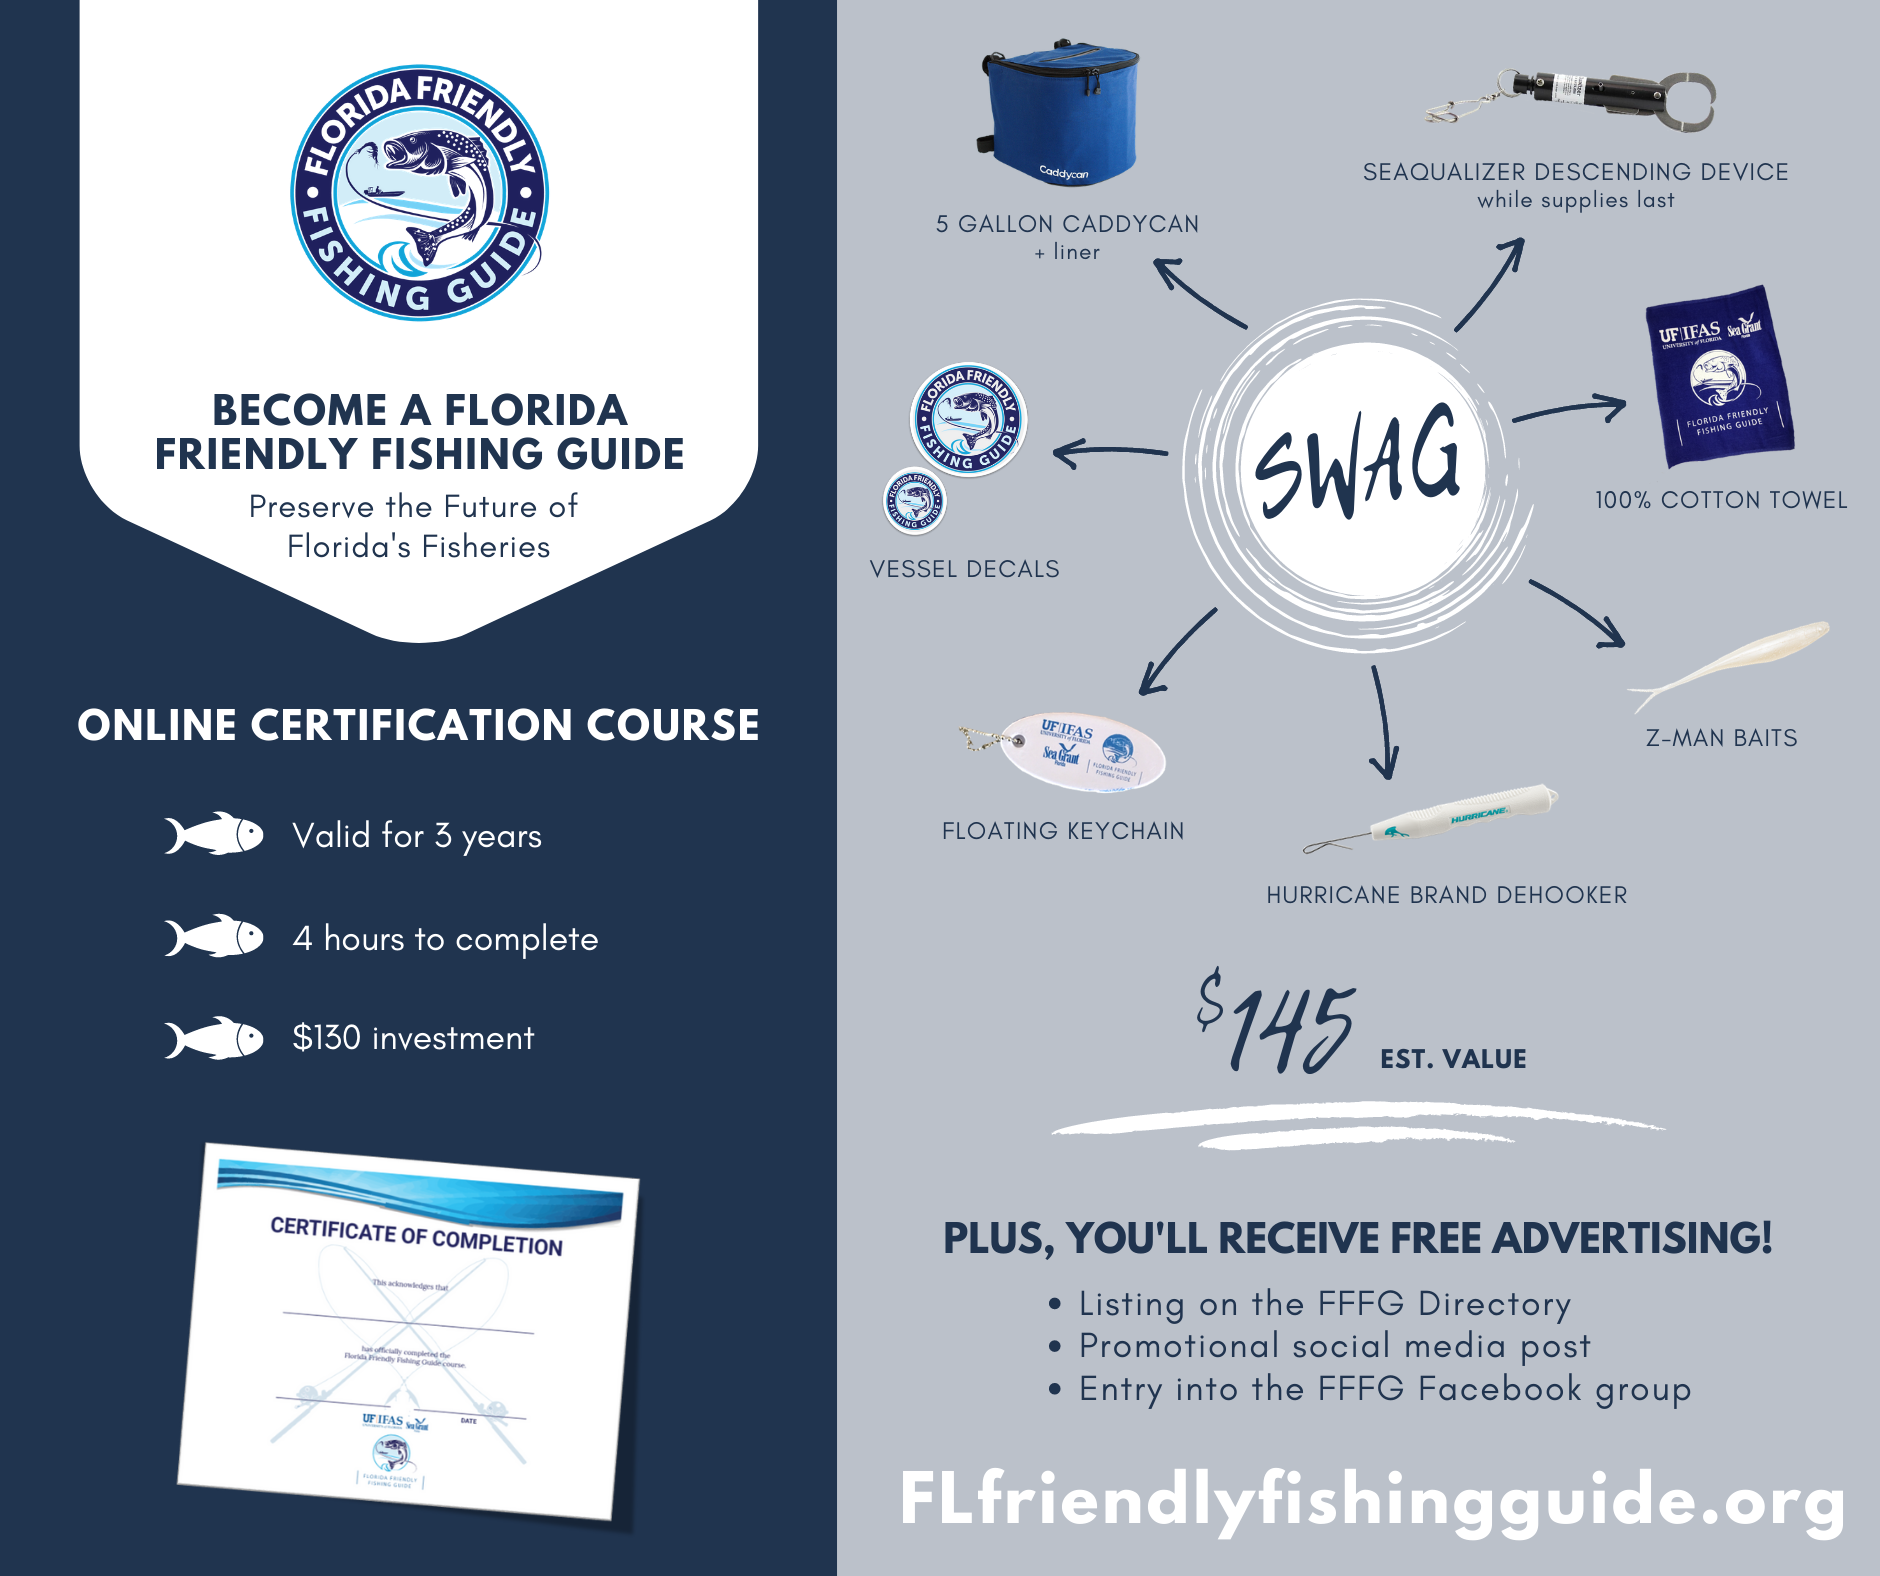 Infographic showing the benefits of FFFG certification